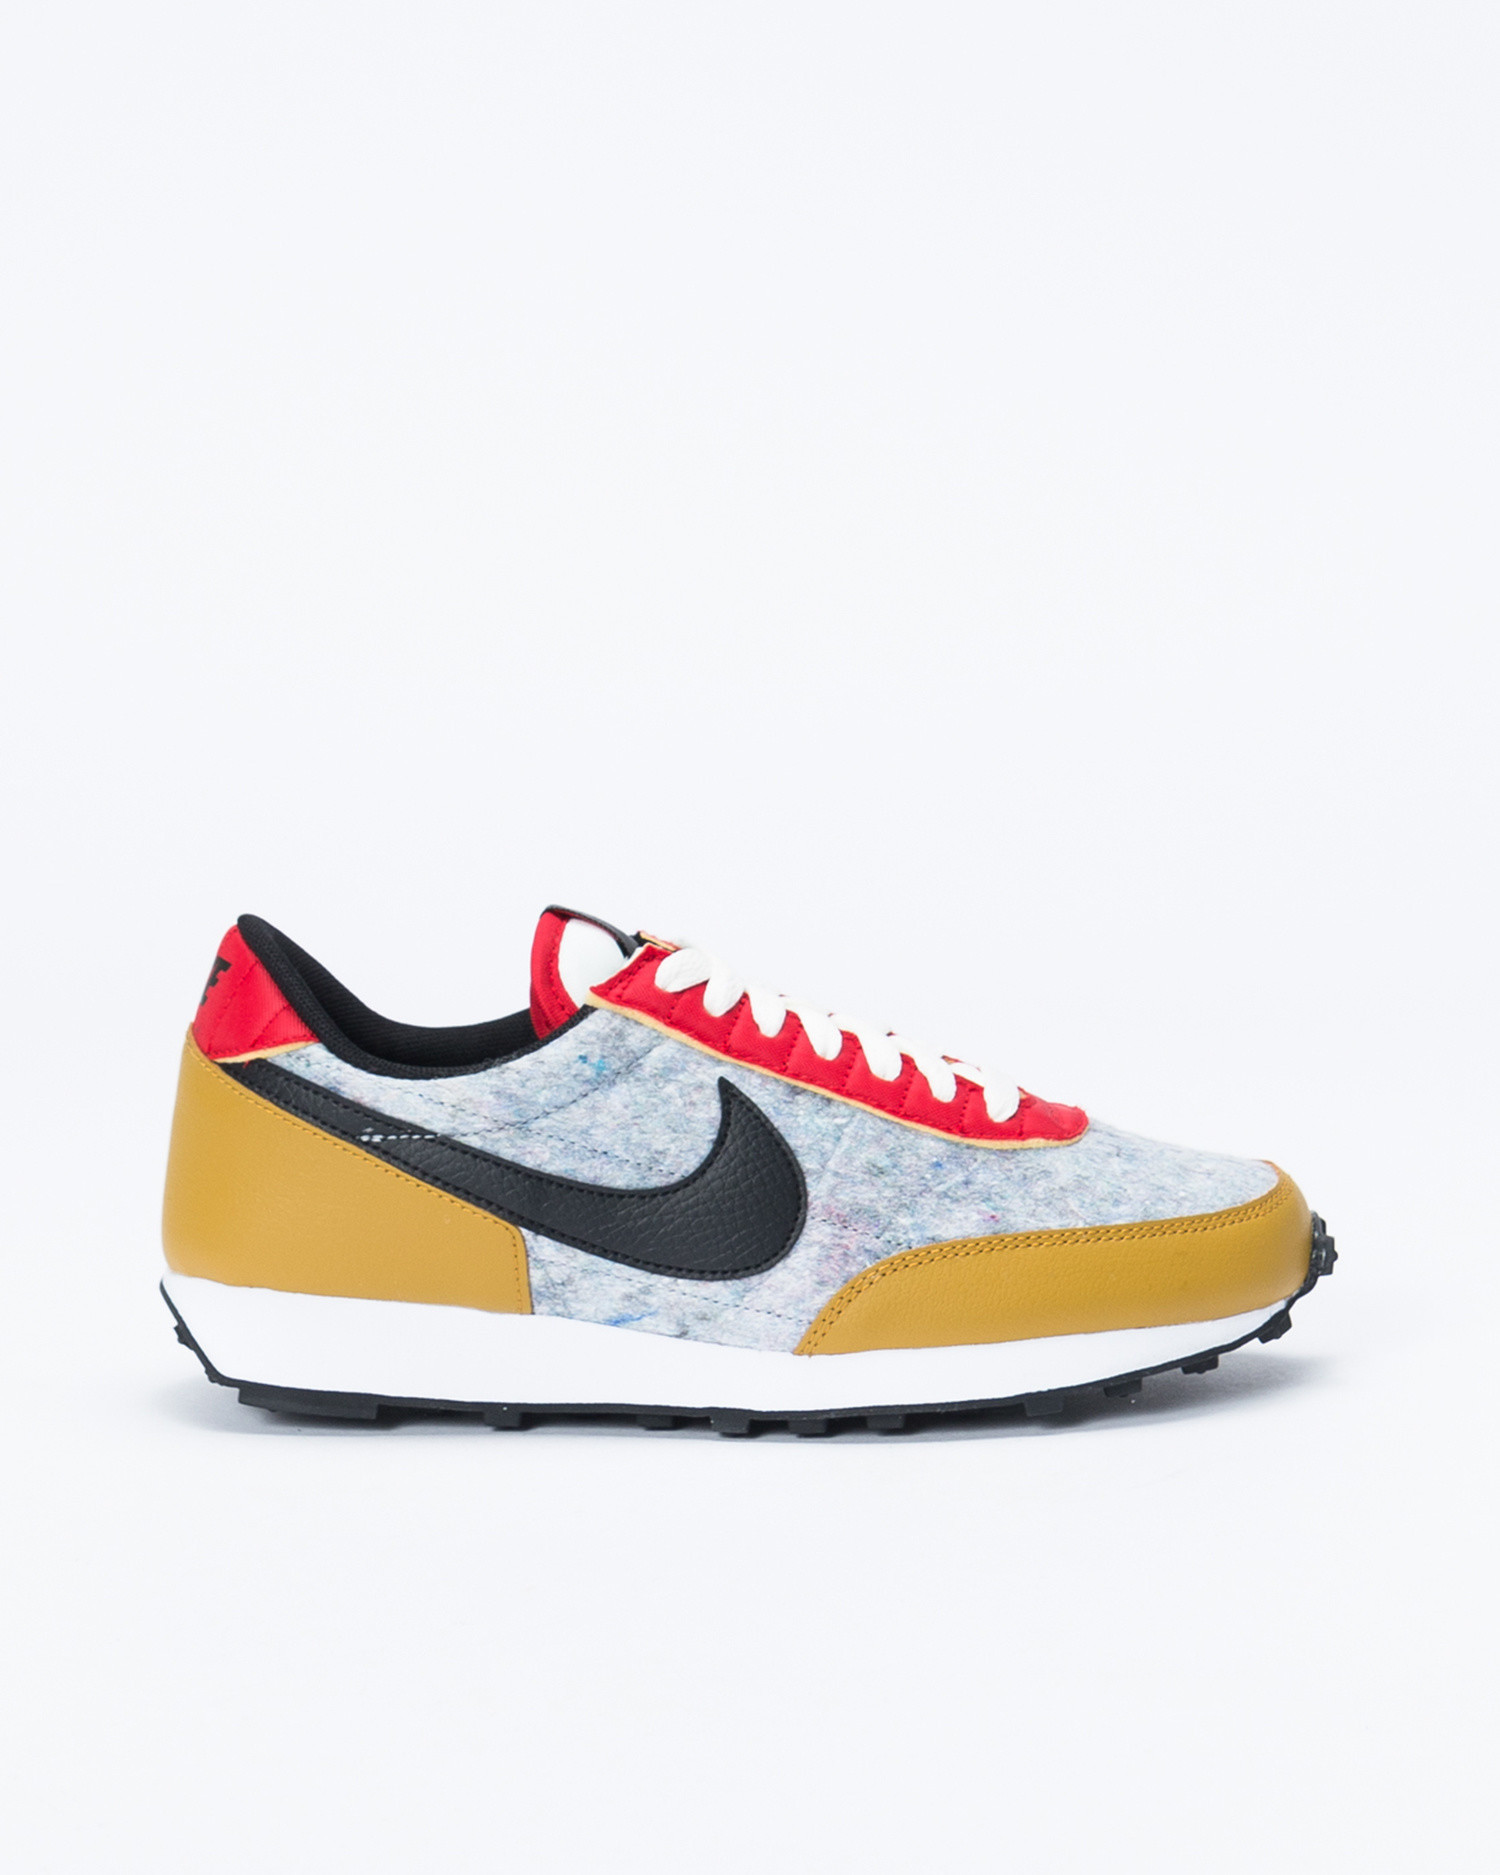 Nike W Daybreak Gold suede/Black/University Red-Sail